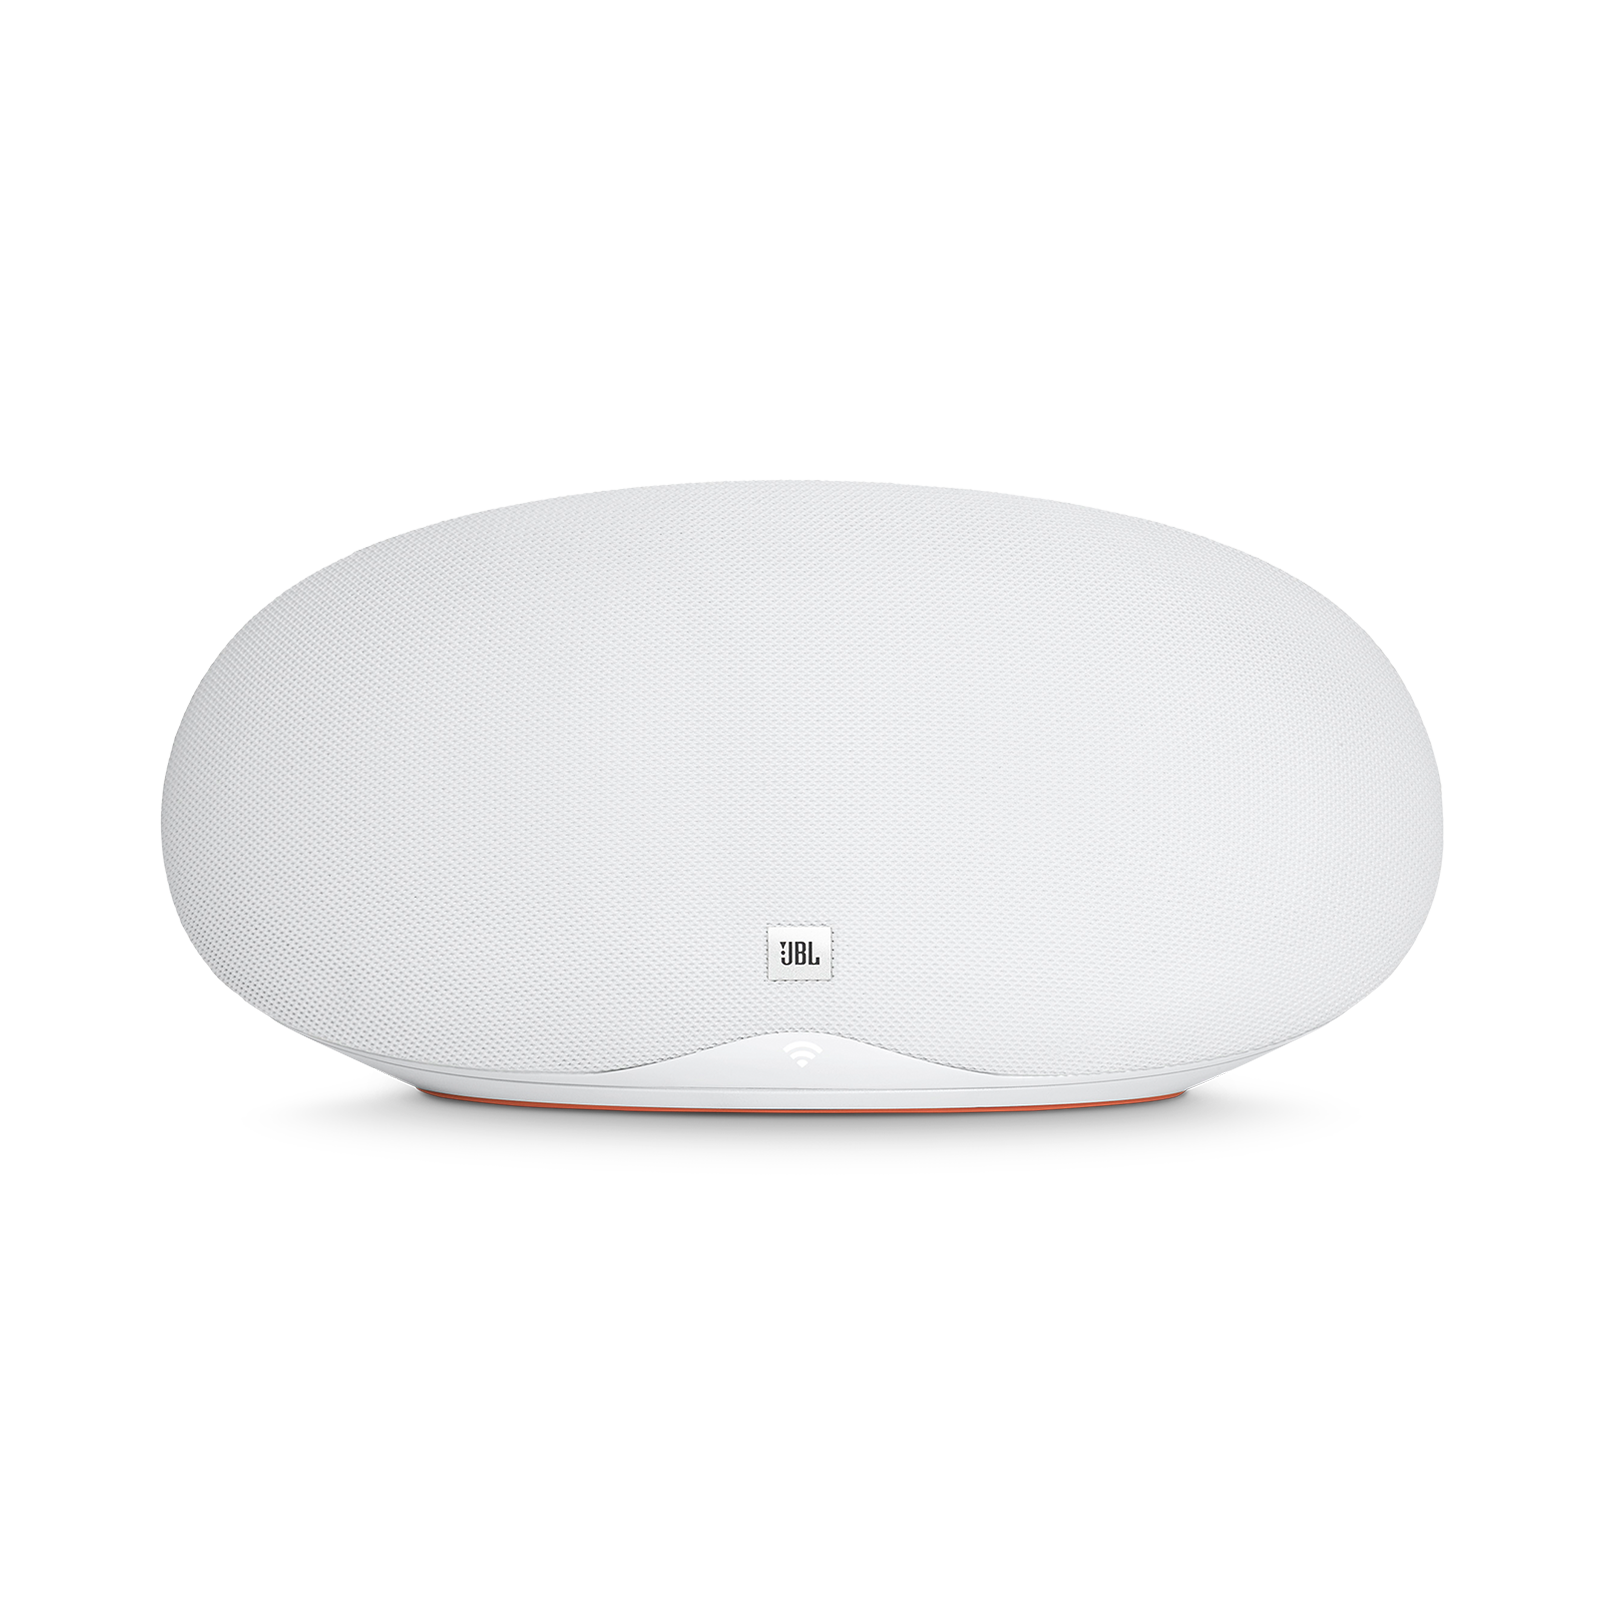 JBL Playlist - White - Wireless speaker with Chromecast built-in - Front